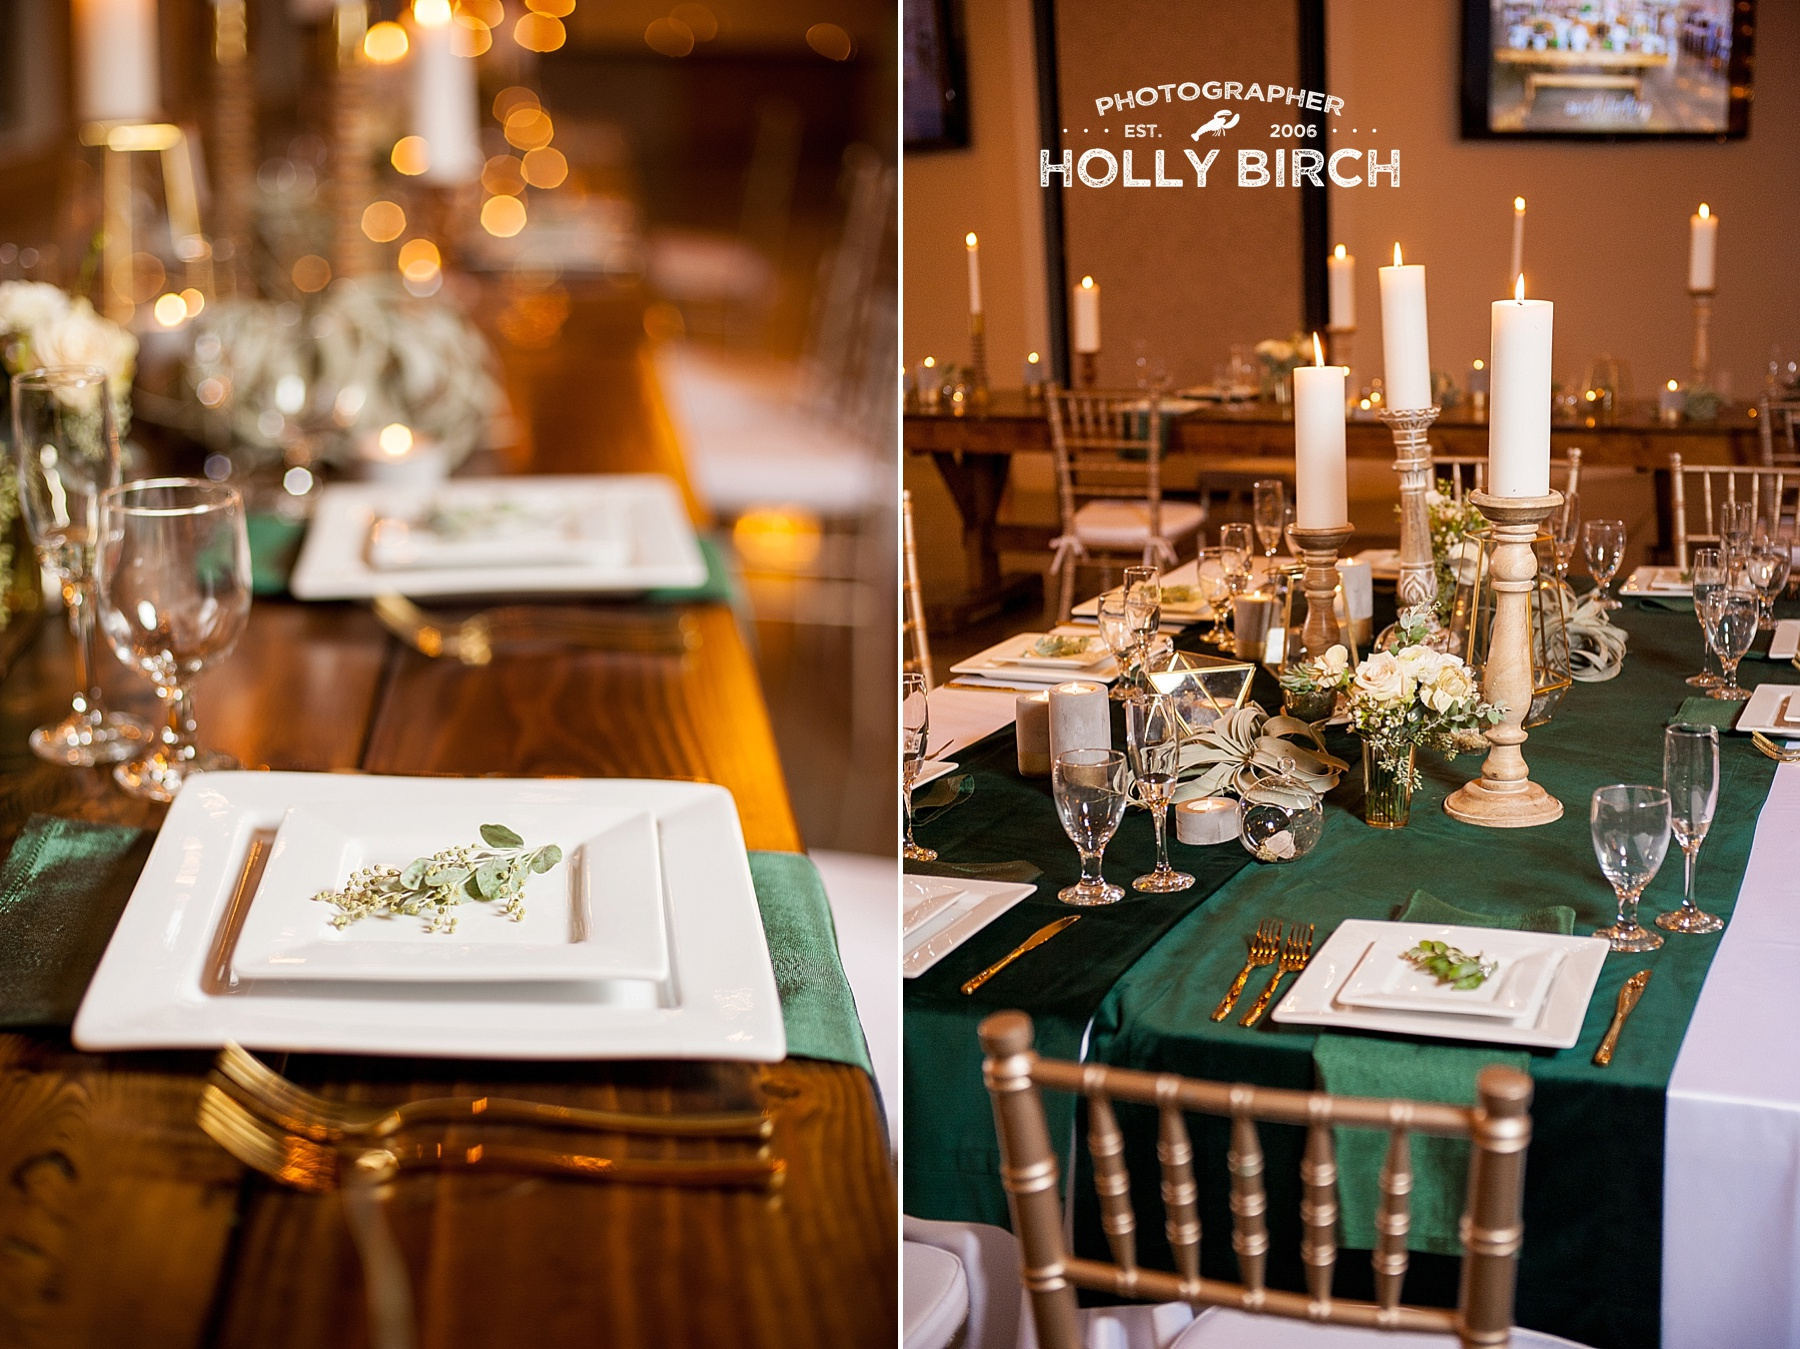 warm candles with crisp white plates and green tablecloth